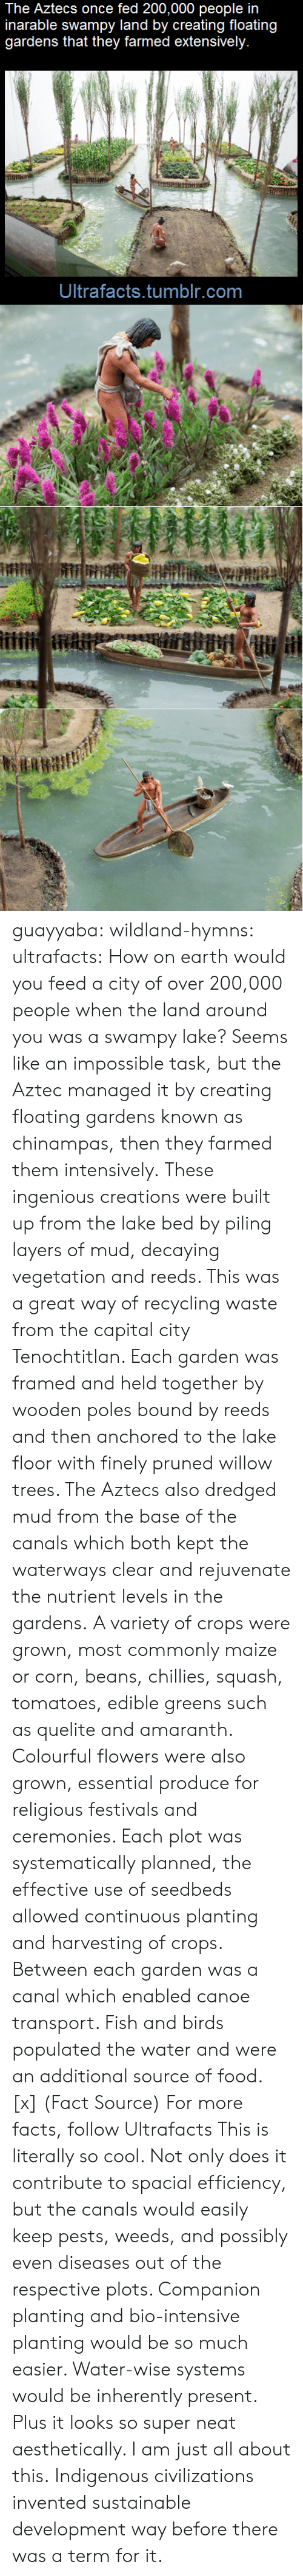 ingenious: The Aztecs once fed 200,000 people in  inarable swampy land by creating floating  gardens that they farmed extensively.  Ultrafacts.tumblr.com guayyaba: wildland-hymns:  ultrafacts:  How on earth would you feed a city of over 200,000 people when the land around you was a swampy lake? Seems like an impossible task, but the Aztec managed it by creating floating gardens known as chinampas, then they farmed them intensively. These ingenious creations were built up from the lake bed by piling layers of mud, decaying vegetation and reeds. This was a great way of recycling waste from the capital city Tenochtitlan. Each garden was framed and held together by wooden poles bound by reeds and then anchored to the lake floor with finely pruned willow trees. The Aztecs also dredged mud from the base of the canals which both kept the waterways clear and rejuvenate the nutrient levels in the gardens. A variety of crops were grown, most commonly maize or corn, beans, chillies, squash, tomatoes, edible greens such as quelite and amaranth. Colourful flowers were also grown, essential produce for religious festivals and ceremonies. Each plot was systematically planned, the effective use of seedbeds allowed continuous planting and harvesting of crops. Between each garden was a canal which enabled canoe transport. Fish and birds populated the water and were an additional source of food. [x] (Fact Source) For more facts, follow Ultrafacts   This is literally so cool. Not only does it contribute to spacial efficiency, but the canals would easily keep pests, weeds, and possibly even diseases out of the respective plots. Companion planting and bio-intensive planting would be so much easier. Water-wise systems would be inherently present. Plus it looks so super neat aesthetically. I am just all about this.   Indigenous civilizations invented sustainable development way before there was a term for it.